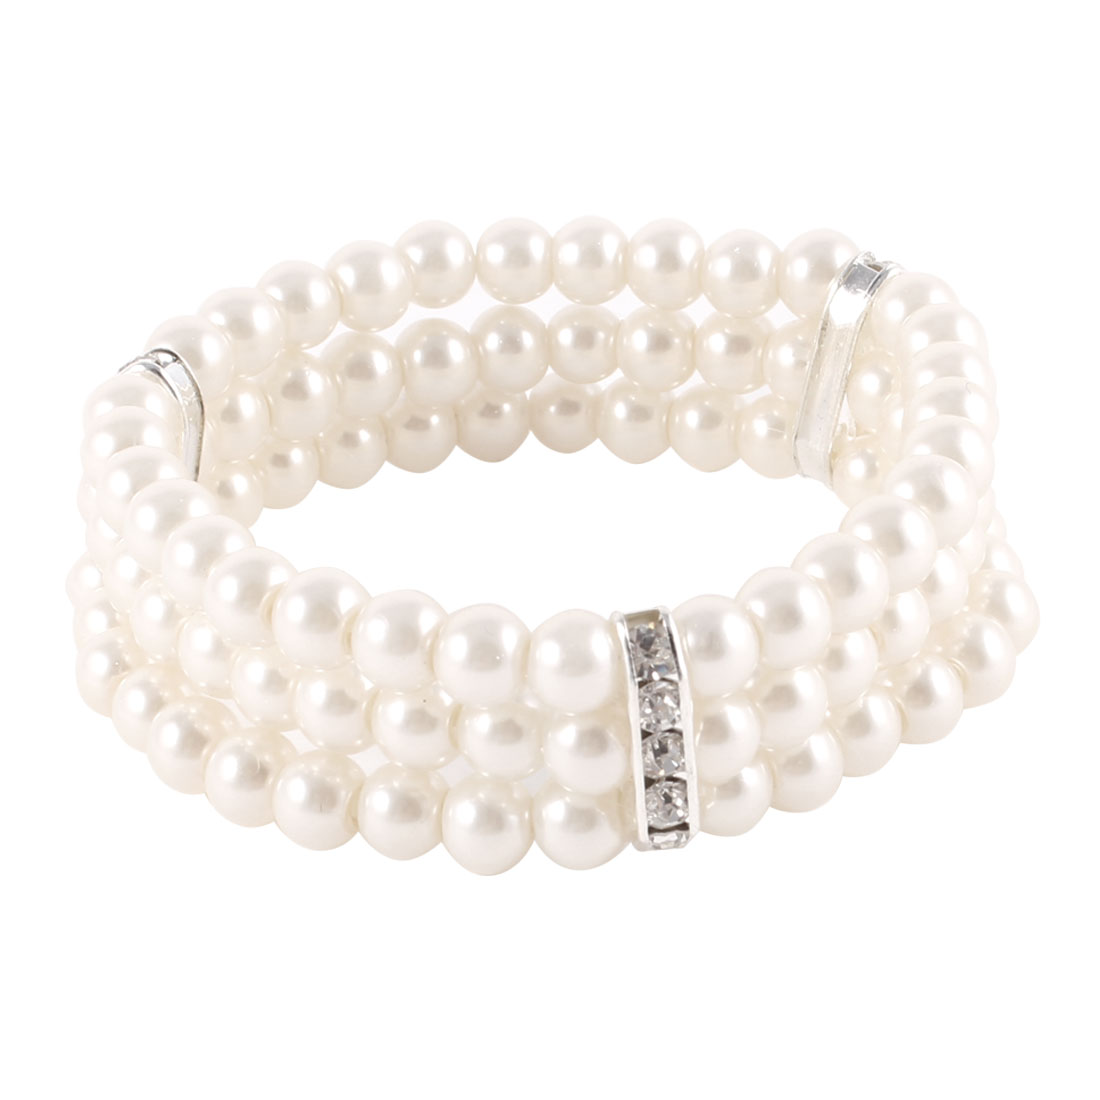 Ladies 3 Rows Faux Pearls Accent Off White Stretch Wrist Bracelet Jewelry